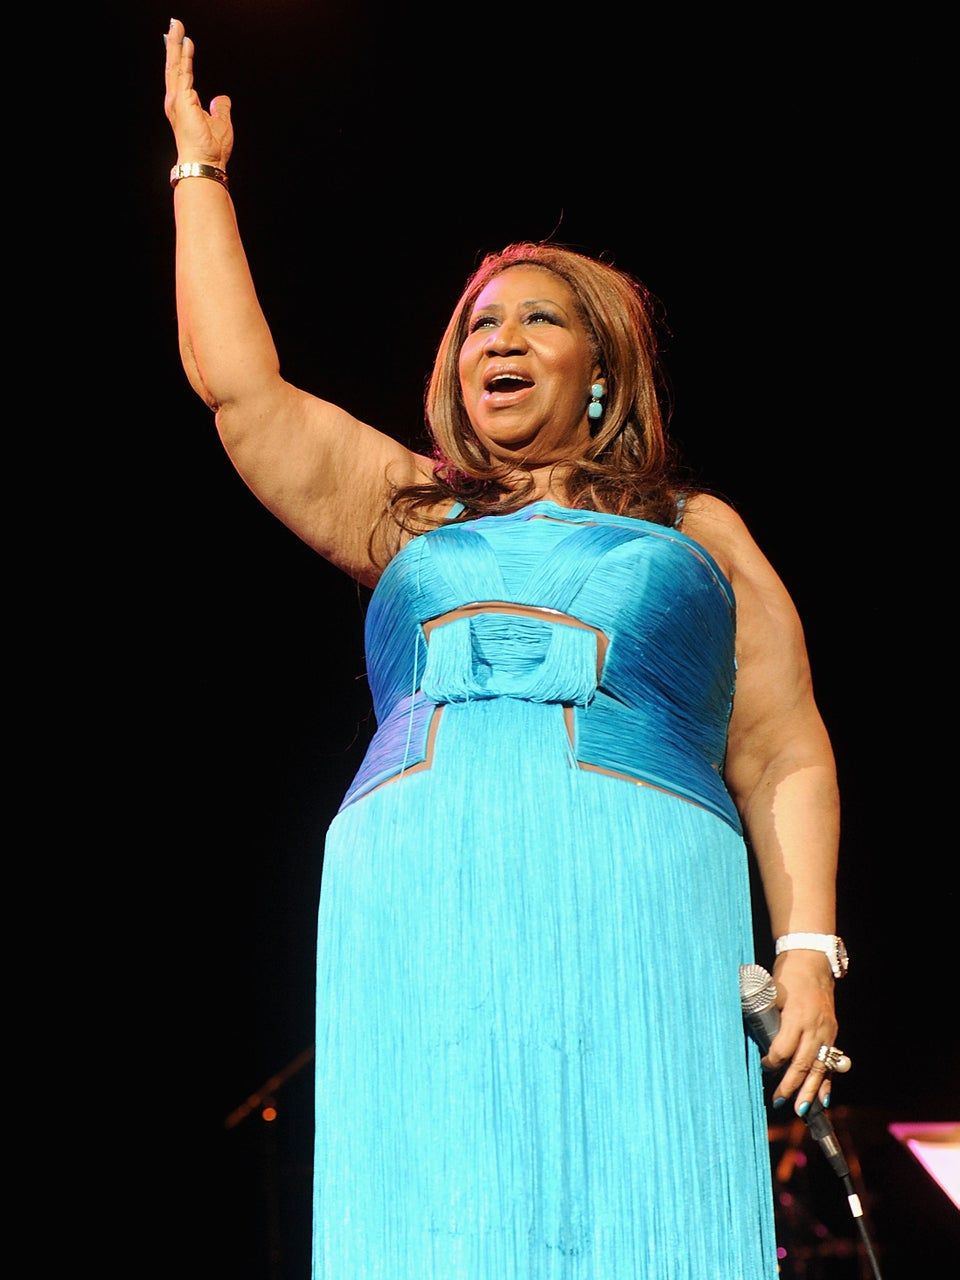 Aretha Franklin's Blue Dress Is The Final Outfit Change For Her Public Viewing